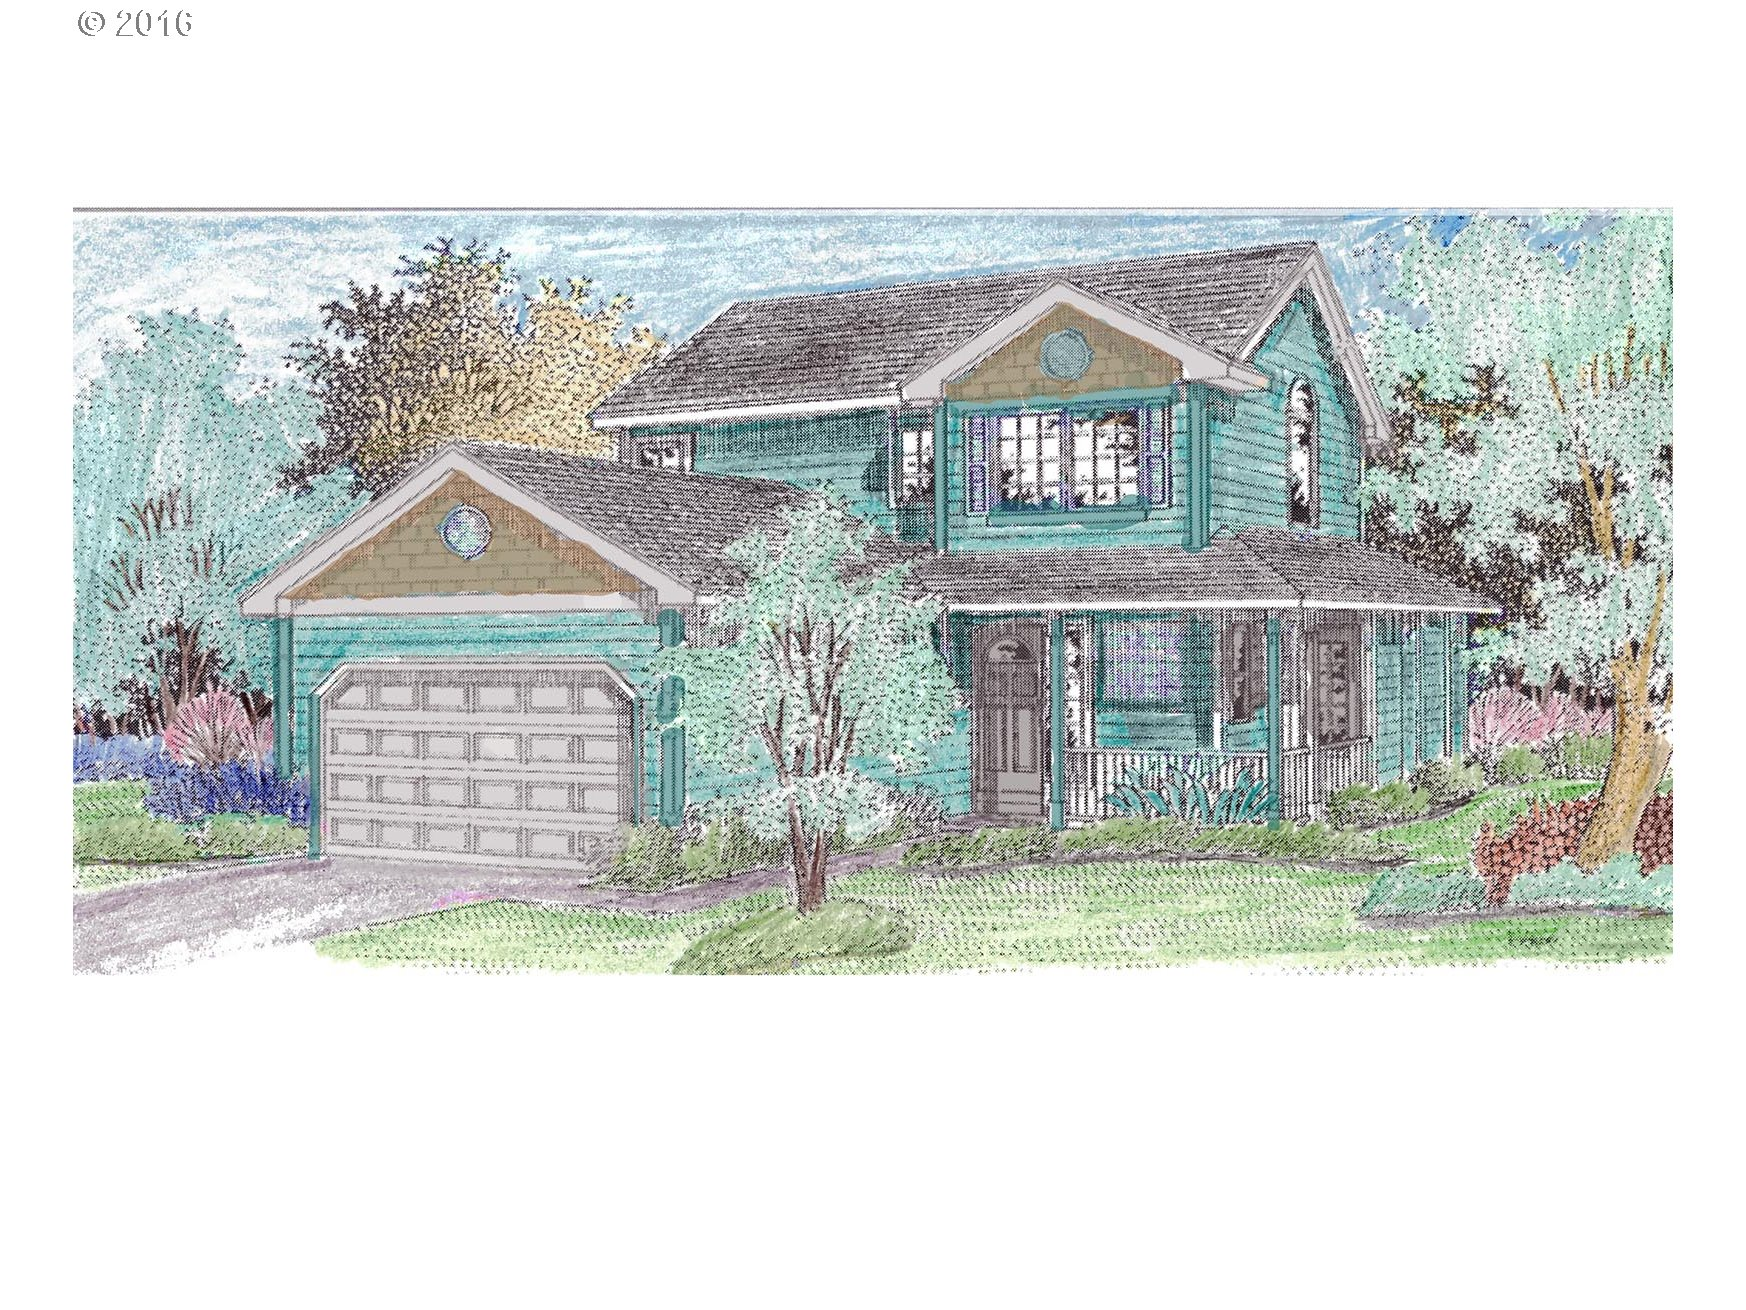 1403 sq. ft 3 bedrooms 2 bathrooms  House For Sale,Camas Valley, OR